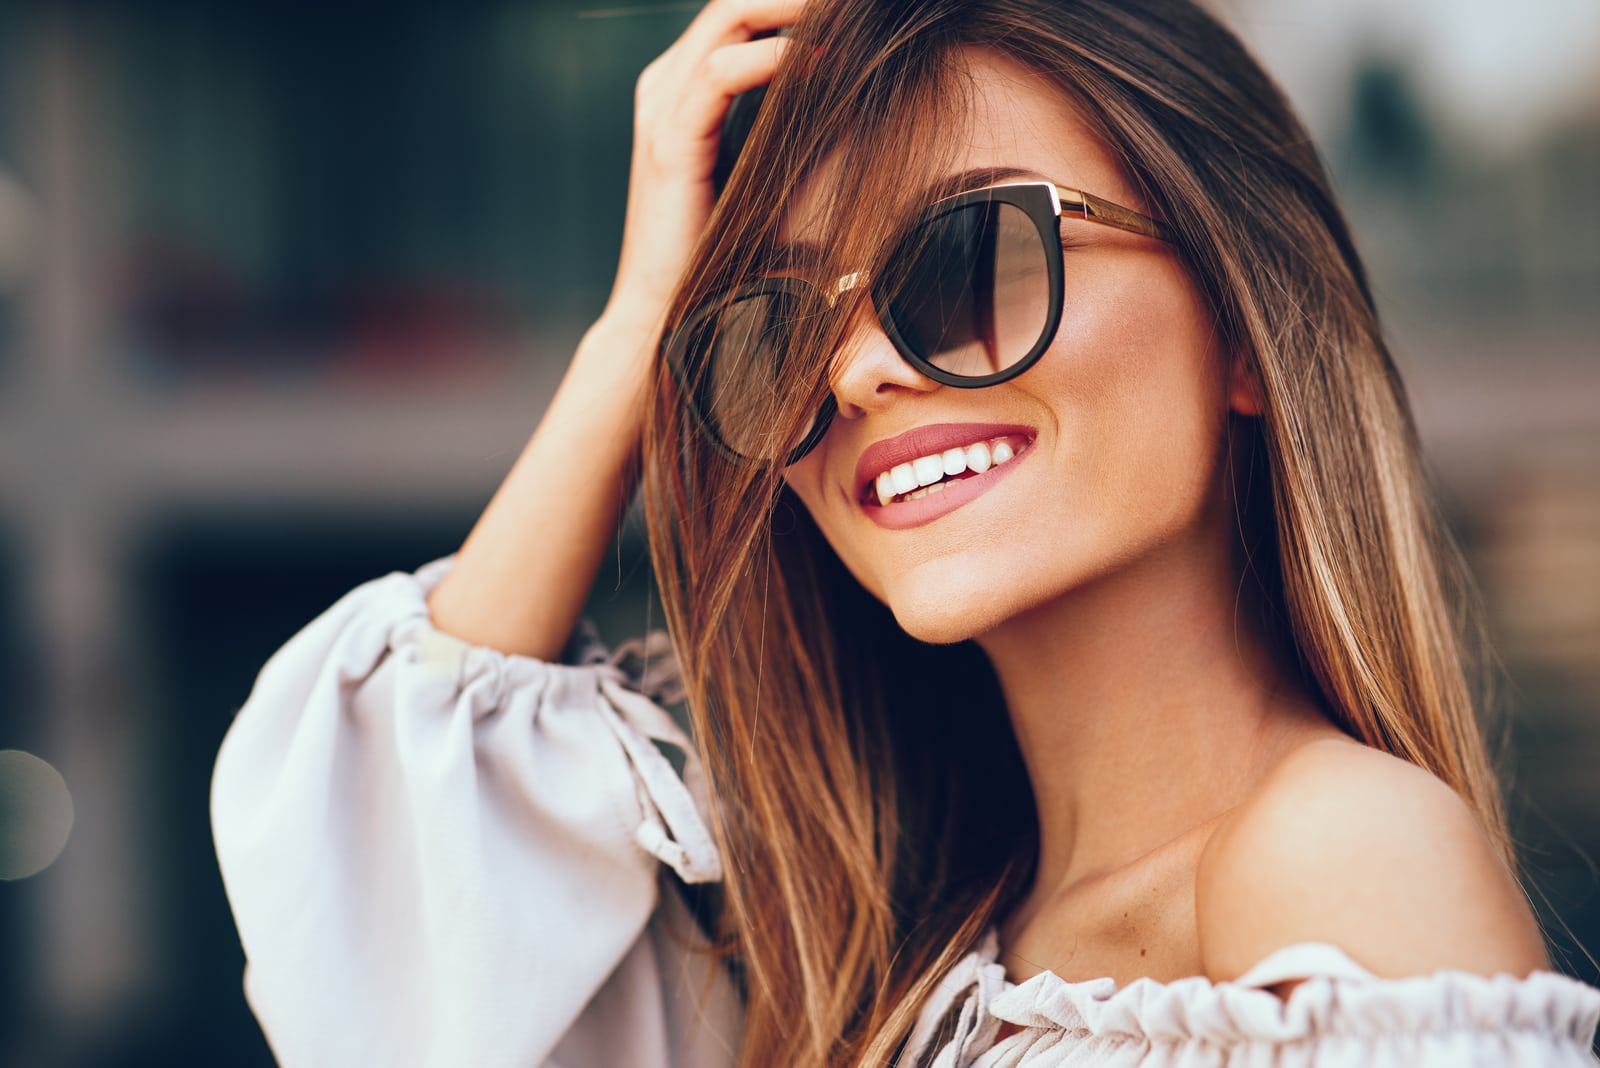 beautiful woman with sunglasses smiling